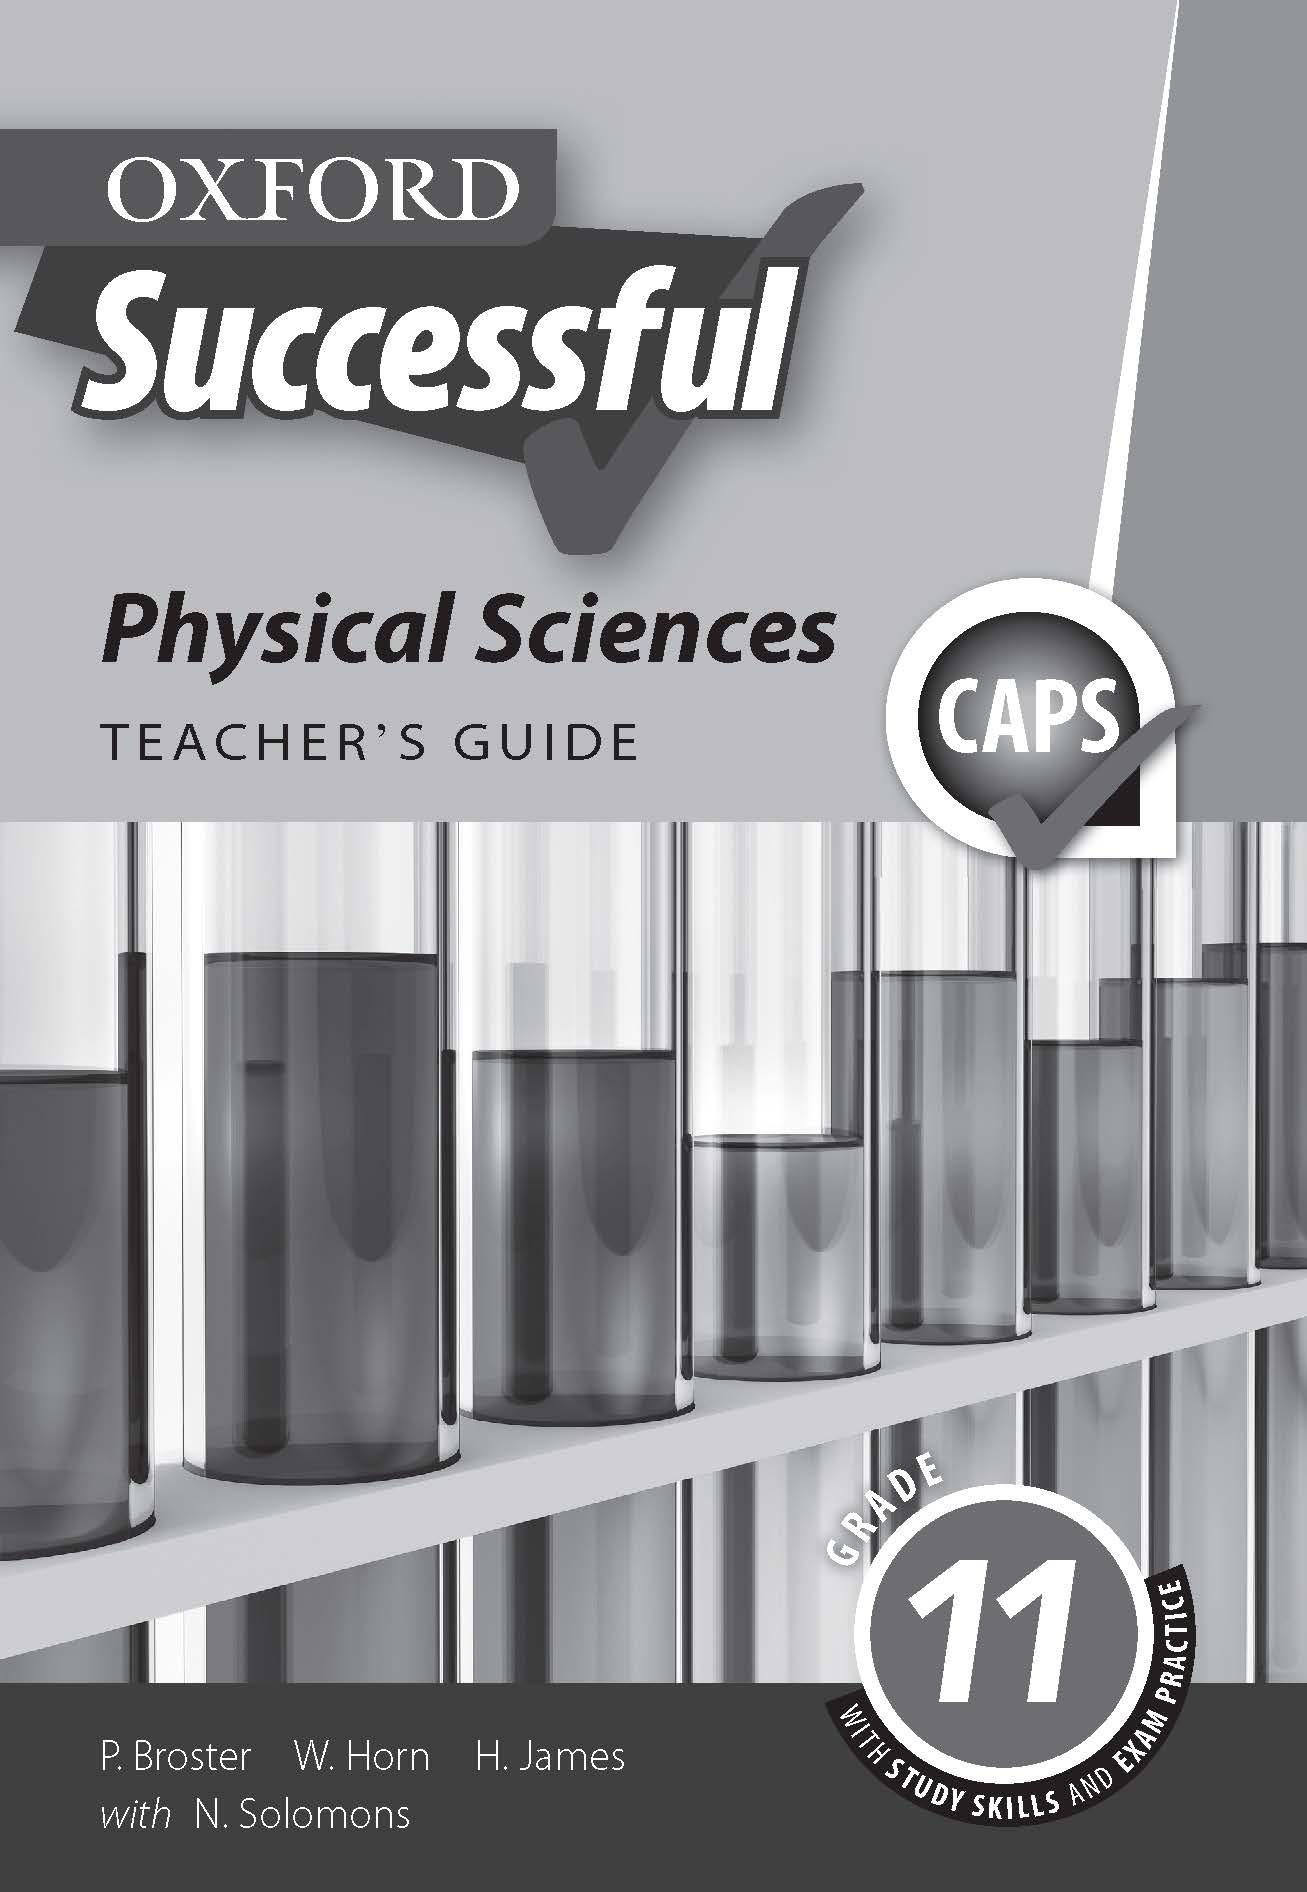 Oxford Successful Physical Sciences Grade 11 Teacher's Guide